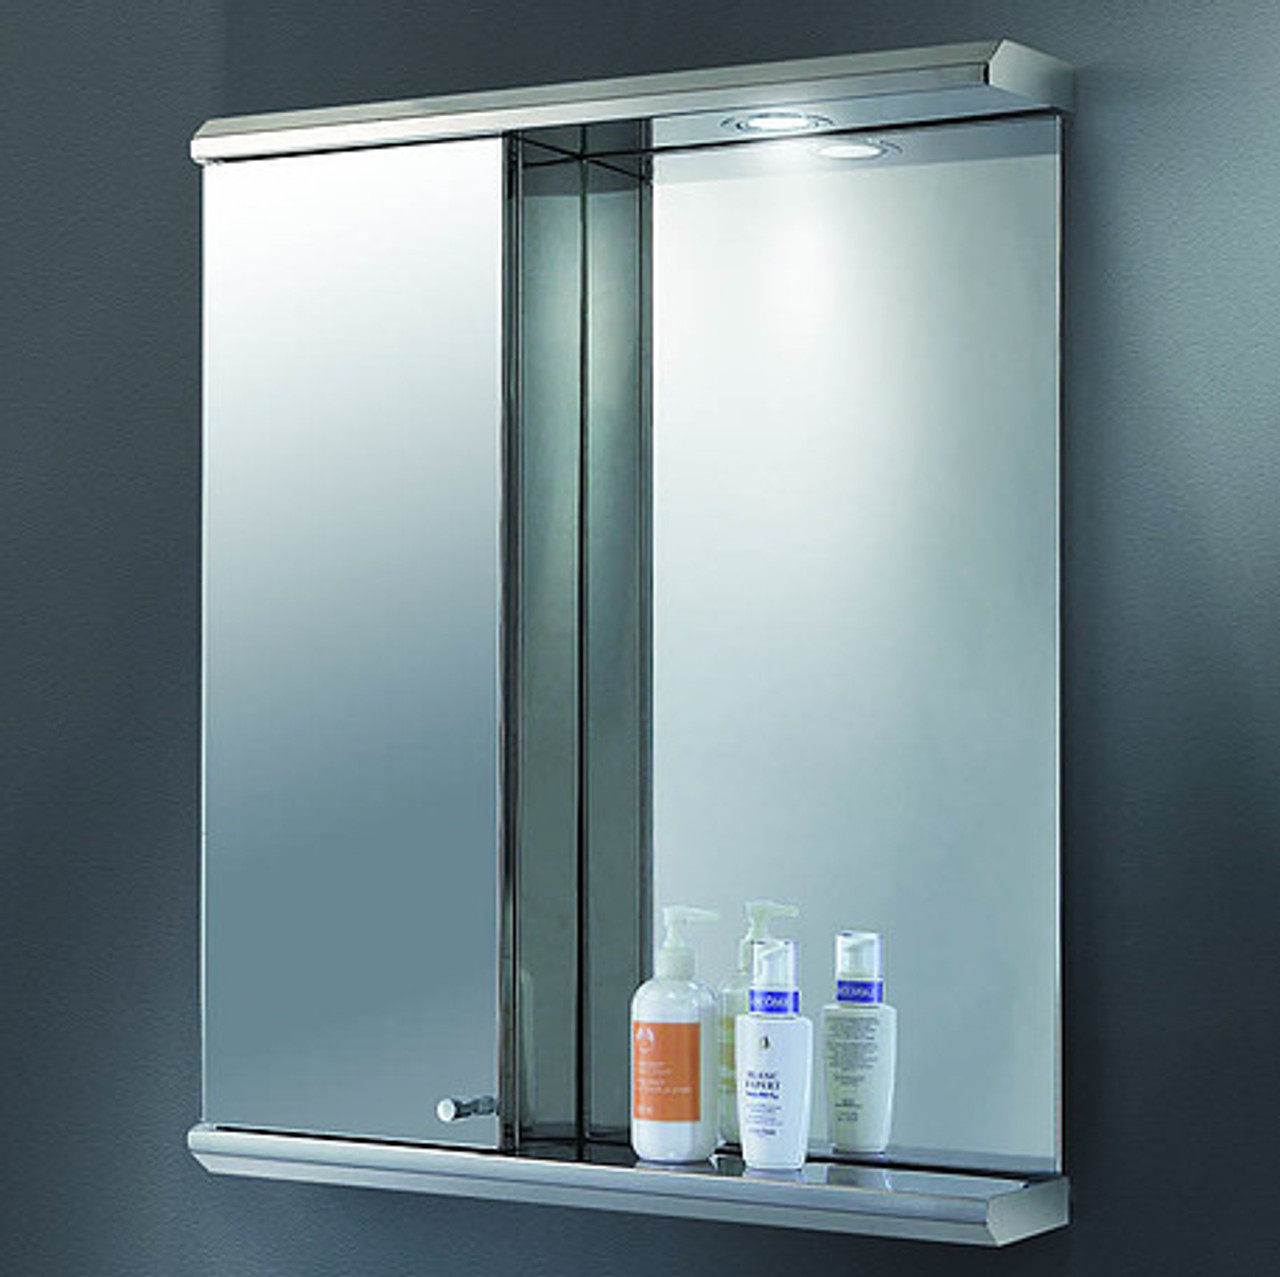 Ketcham Lighted Mirror Medicine Cabinets Stainless Steel Series Combo Cabinets